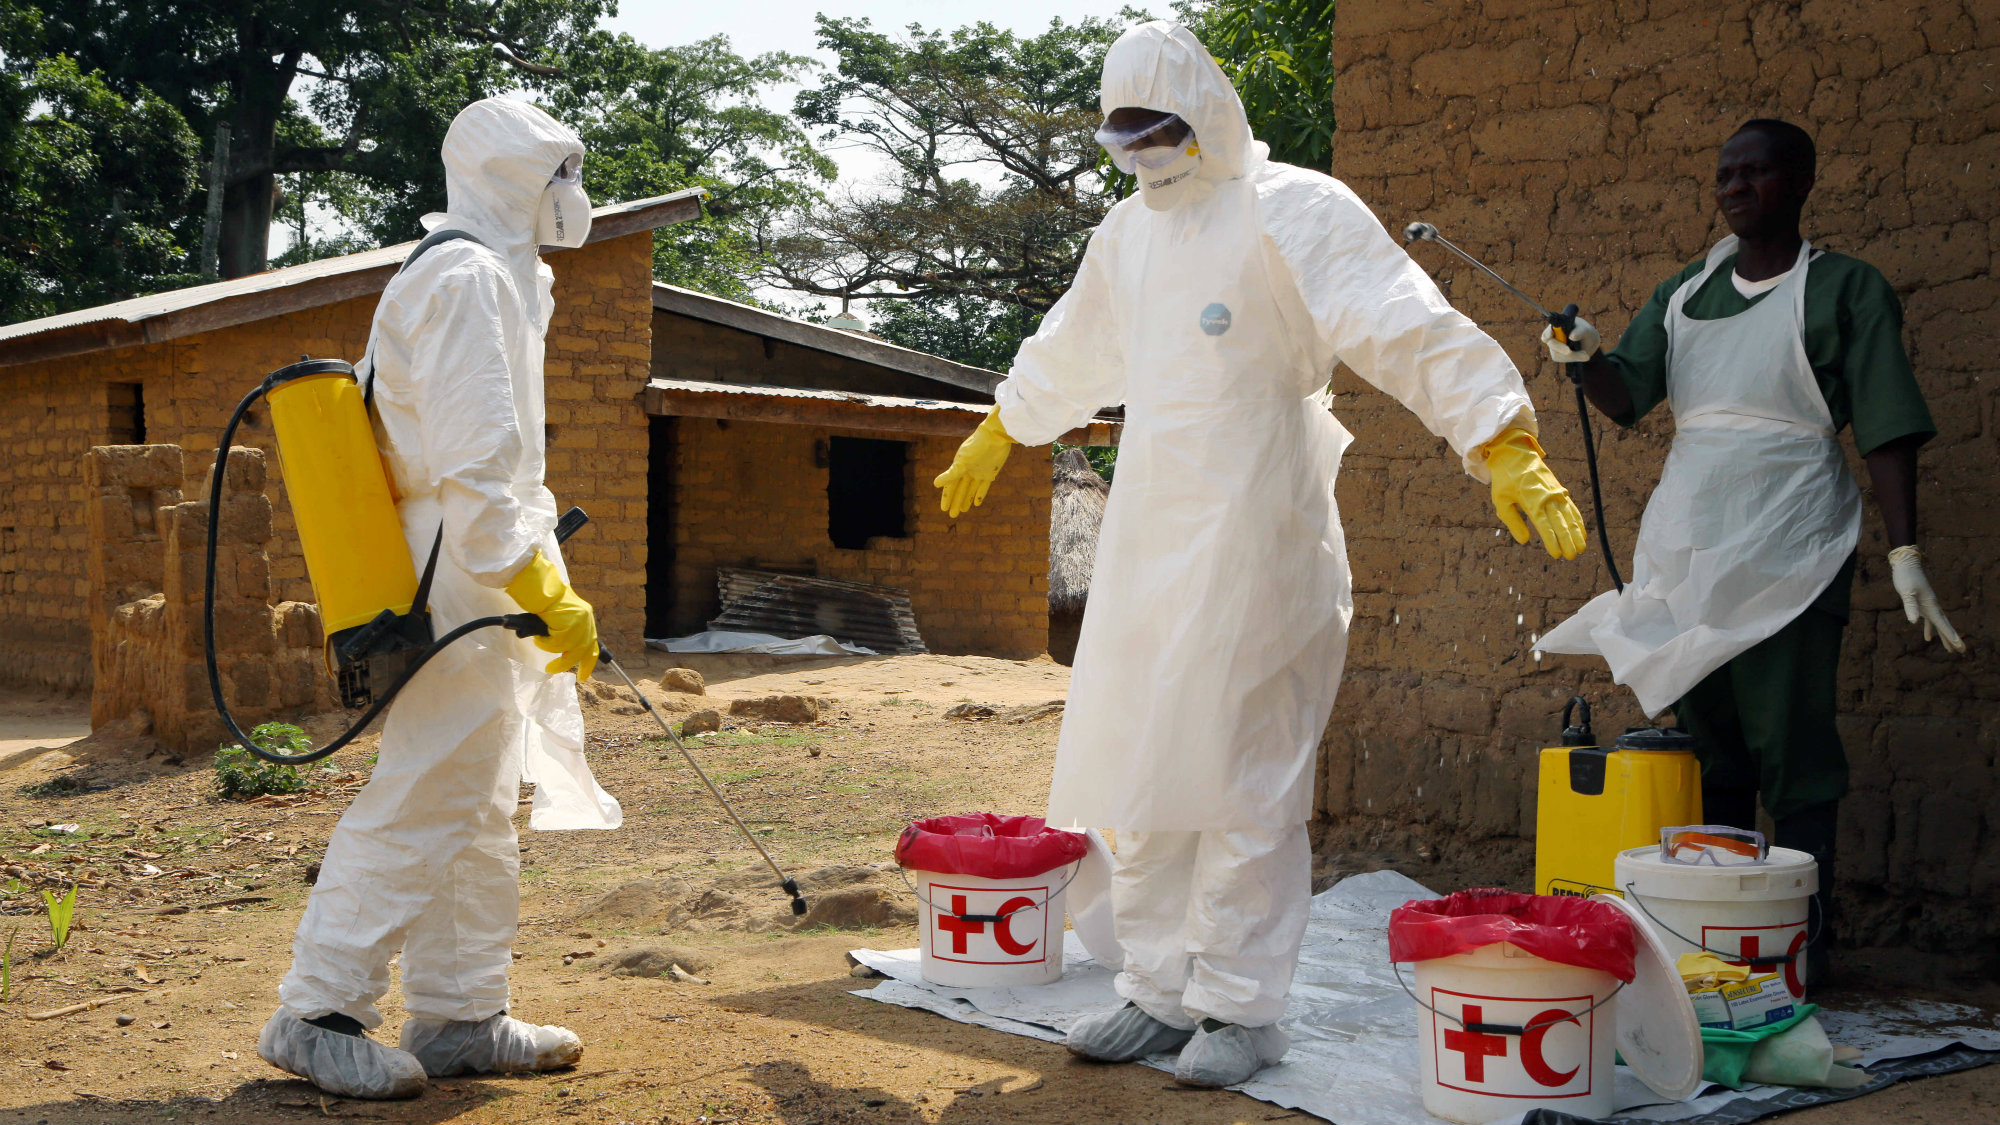 DR Congo: Ebola spreads to city from countryside, one new case registered